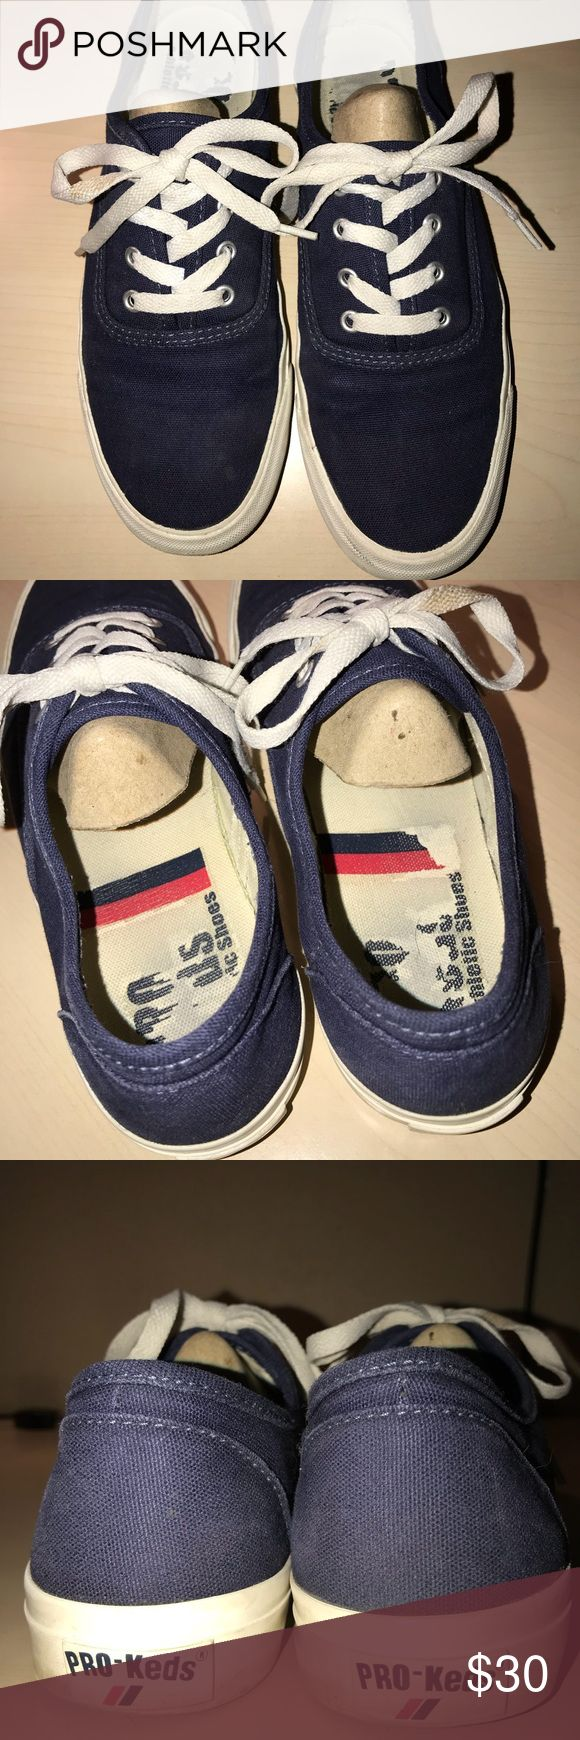 Blue Keds Athletic shoes Preloved blue Pro keds, they have some signs of wear-it can be seen in the pictures. Willing to take reasonable offers Keds Shoes Athletic Shoes